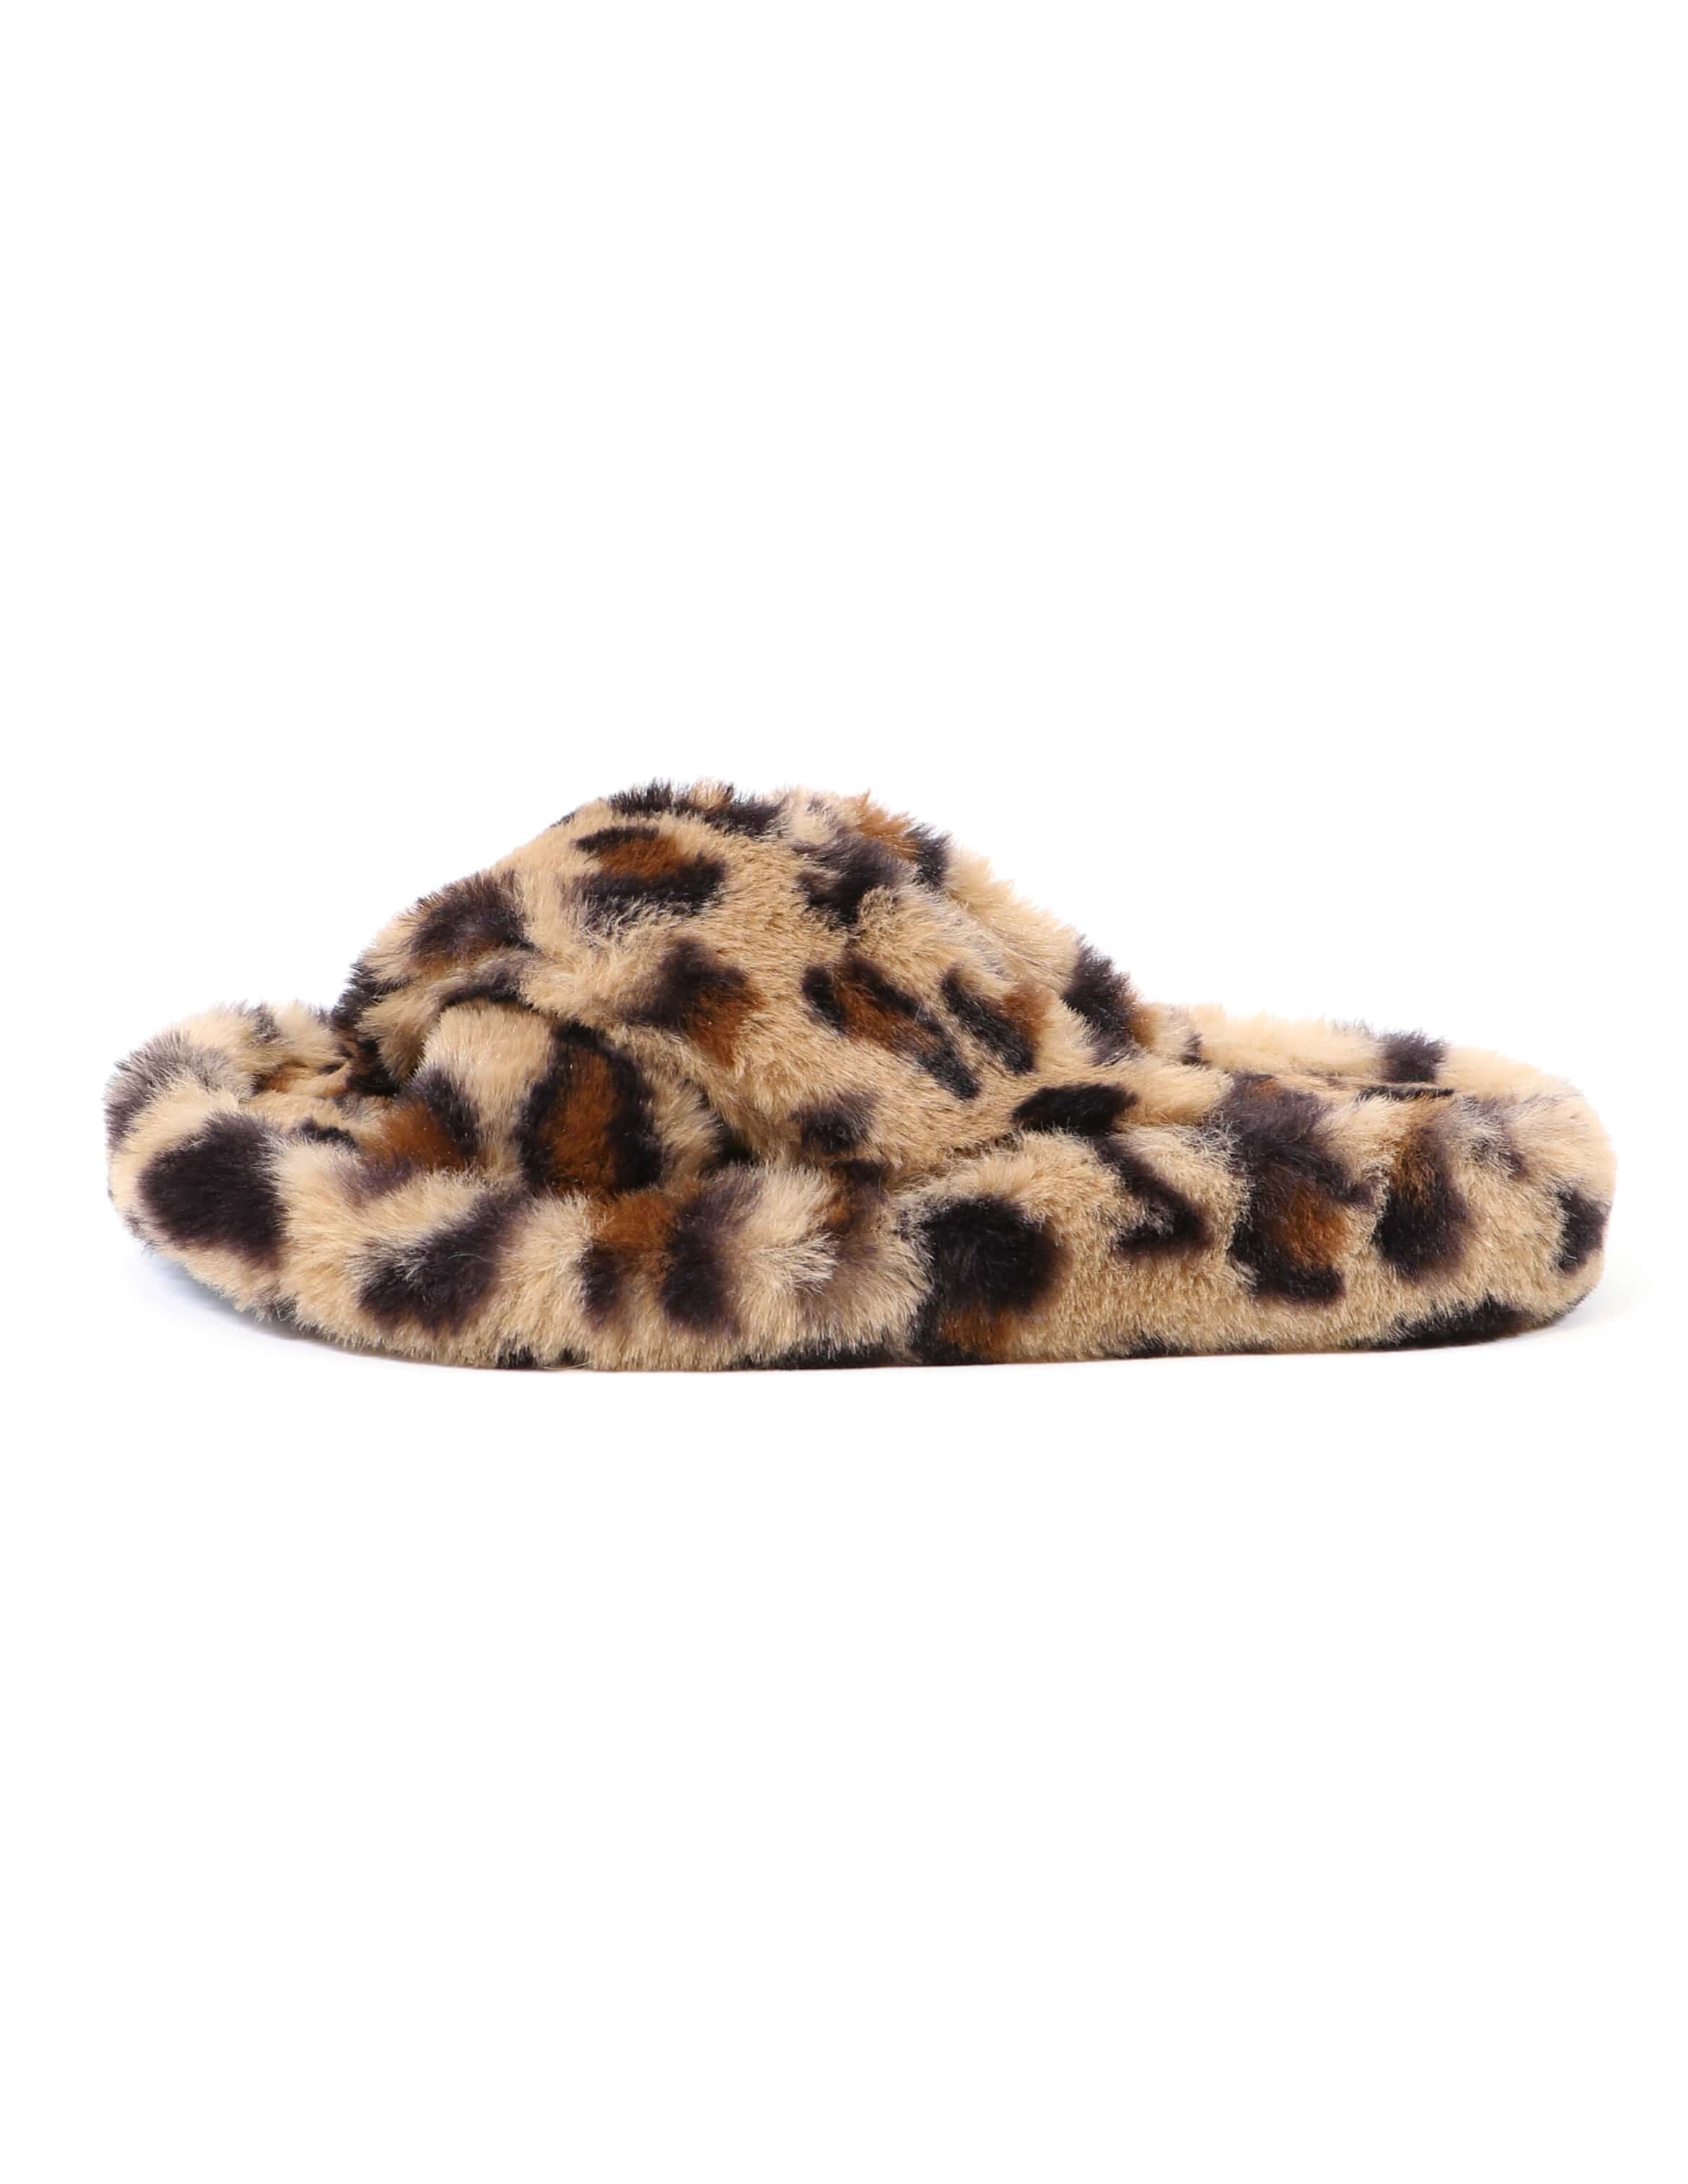 Single cheetah comfy fur days soda slipper on white background